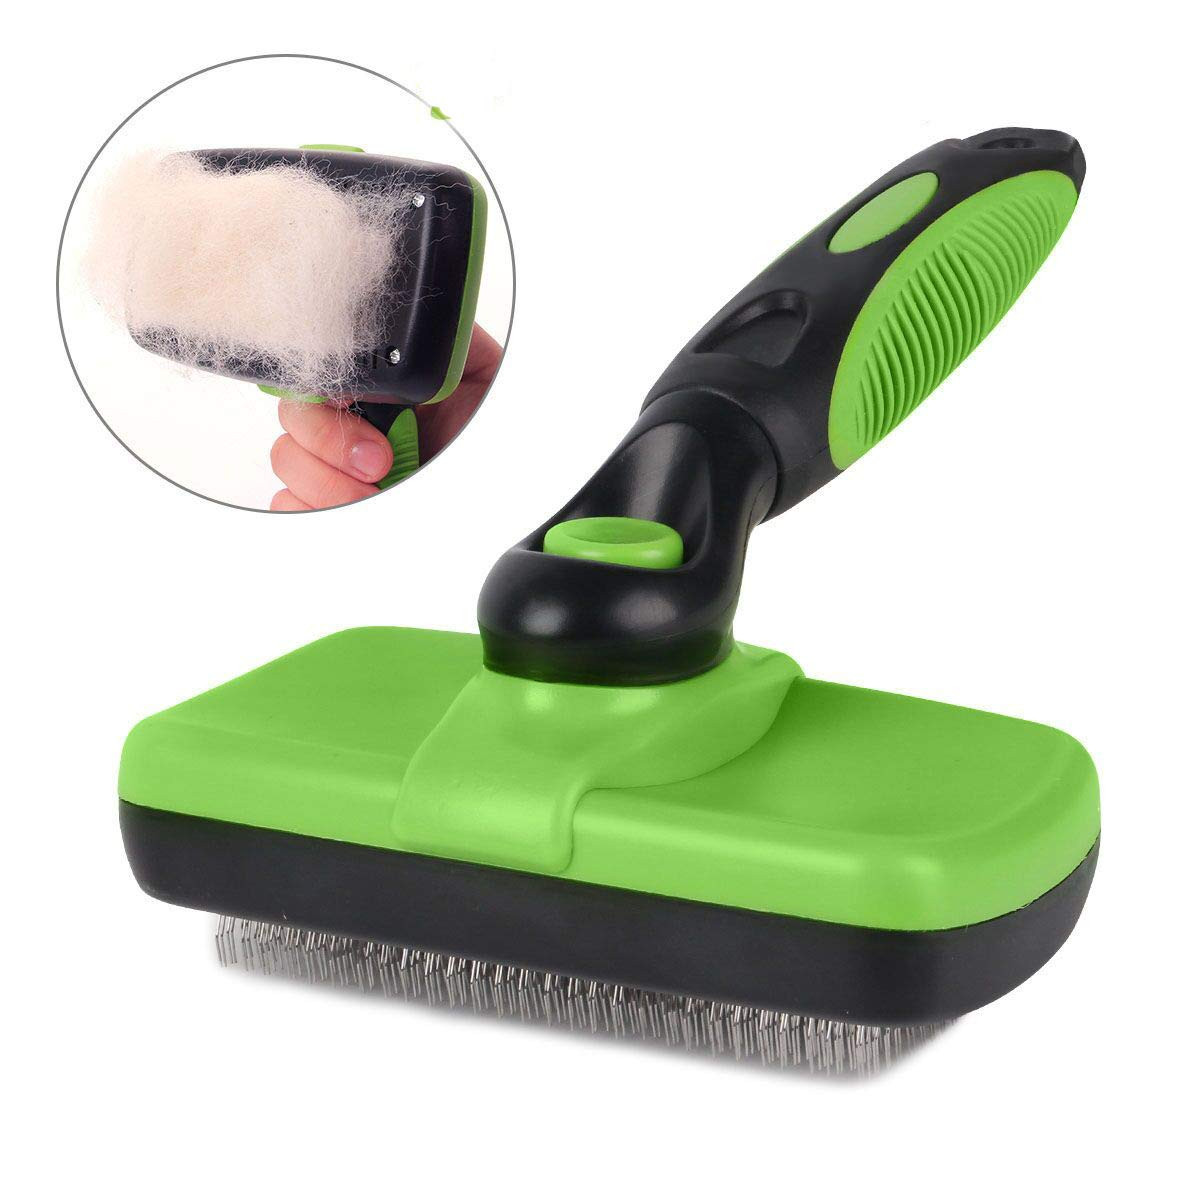 Smartelf Pet Grooming Brush Self Cleaning Slicker Brushes For Dogs And Cats Long And Thick Hair Best Pet Shedding Tool For Grooming Loose